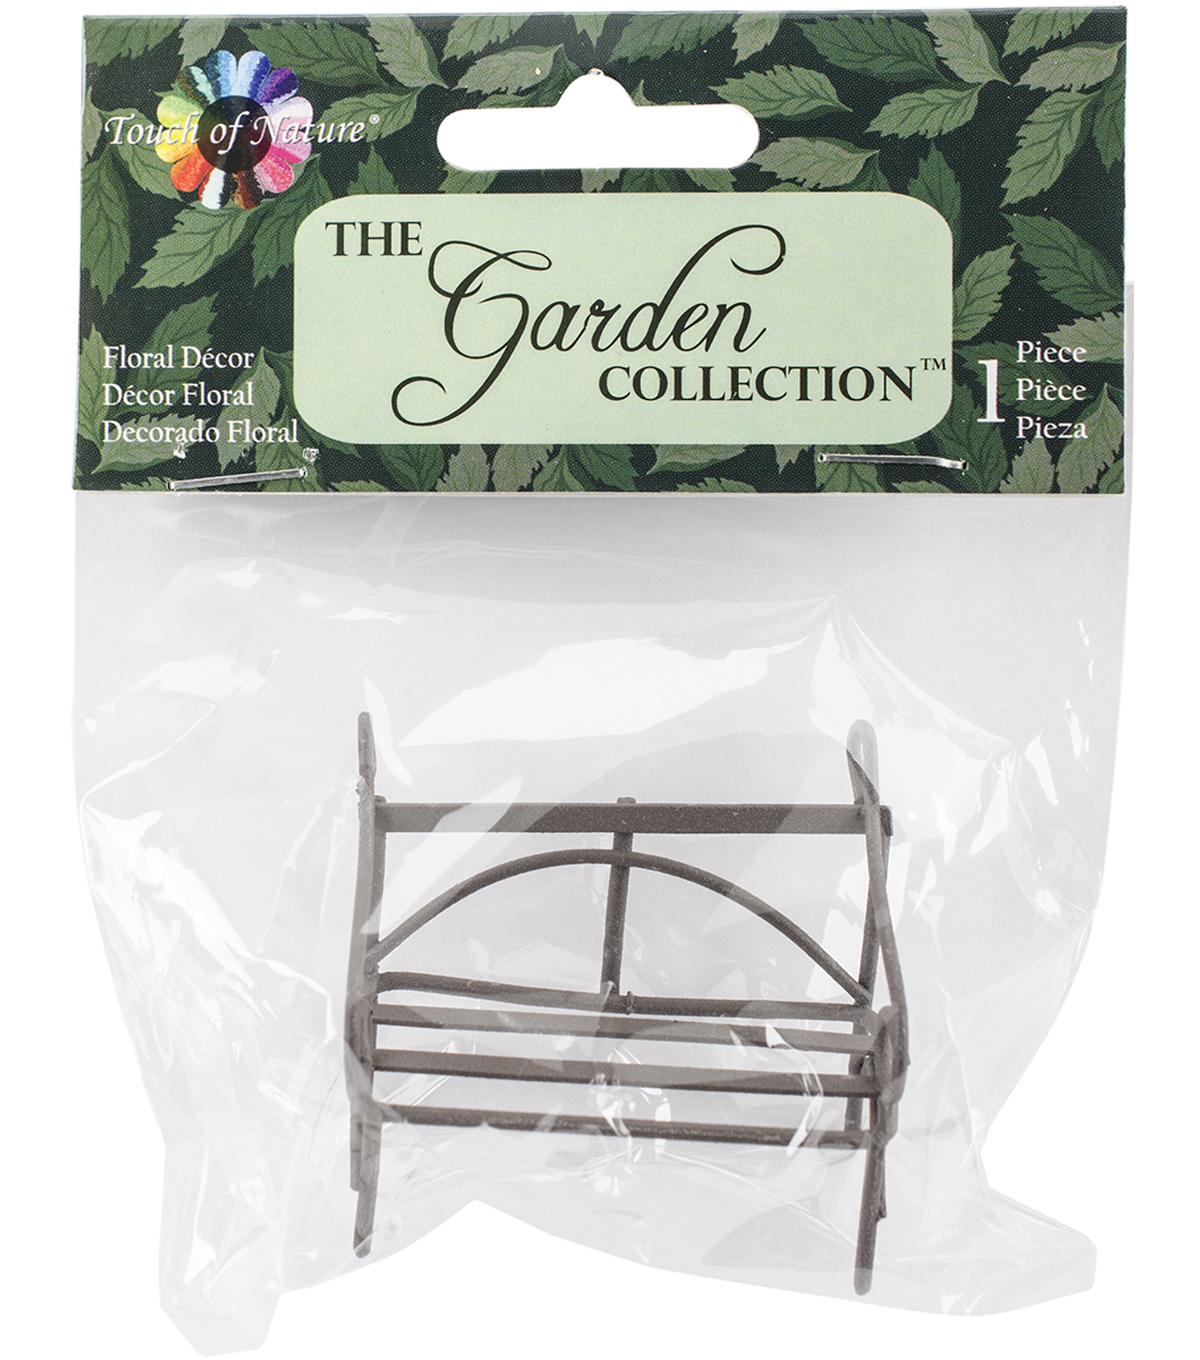 Midwest Design The Garden Collection 2'' Mini Iron Garden Bench